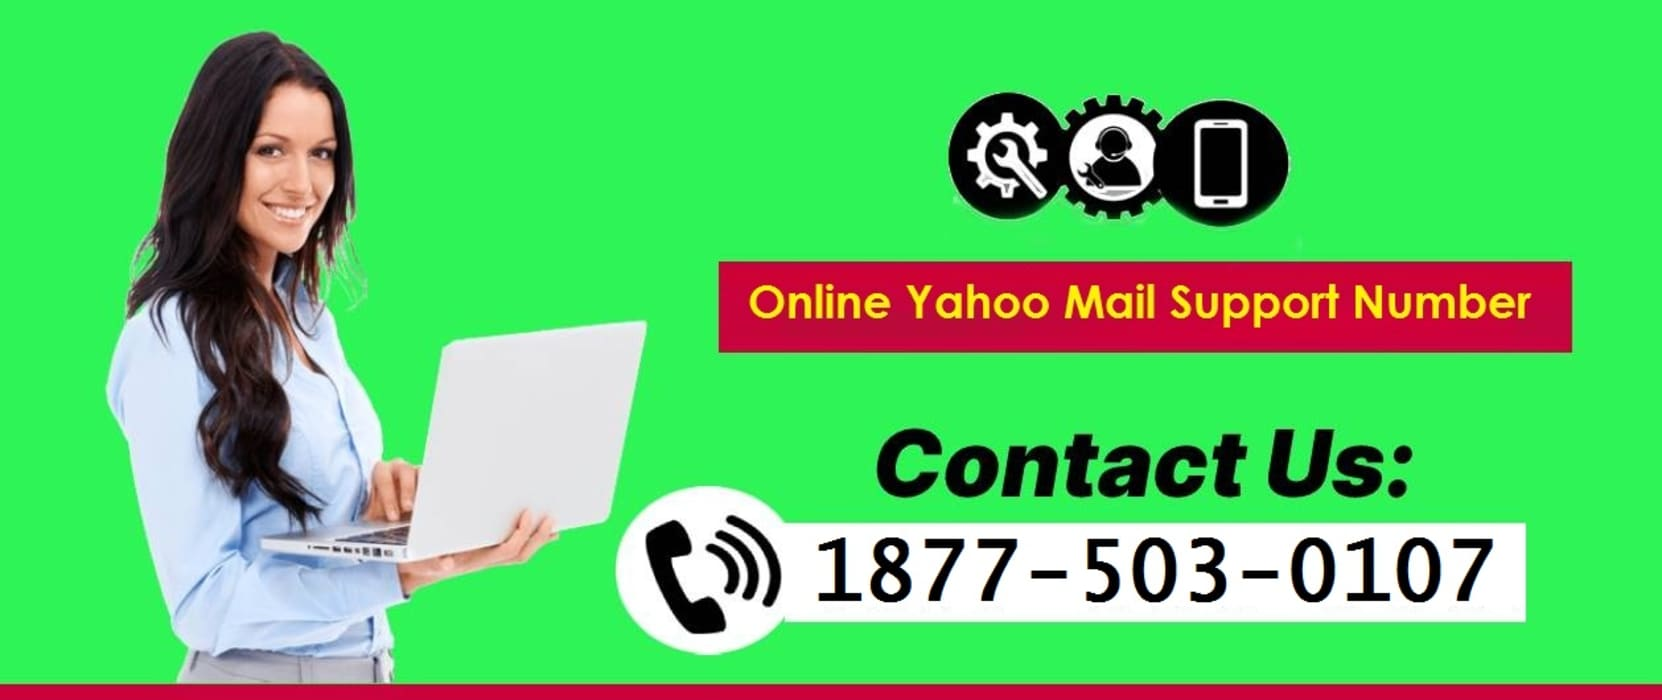 Online Yahoo Mail Support Number 1877-503-0107 Classic style conservatory by Yahoo Mail Support Number 1877-503-0107 Classic